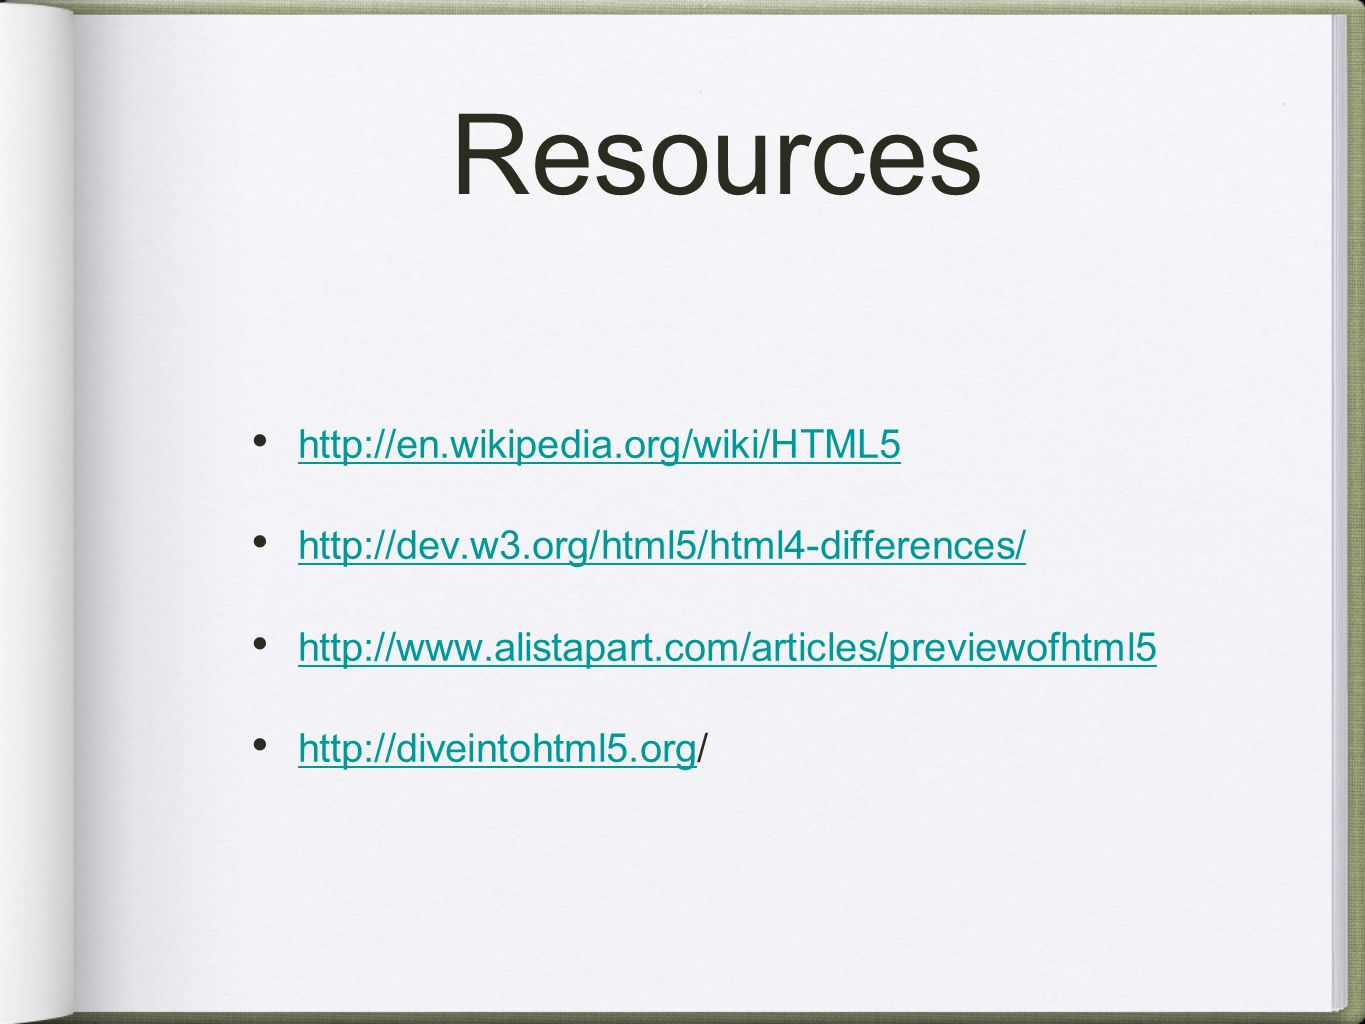 Resources http://en.wikipedia.org/wiki/HTML5 http://dev.w3.org/html5/html4-differences/ http://www.alistapart.com/articles/previewofhtml5 http://diveintohtml5.org/ http://diveintohtml5.org